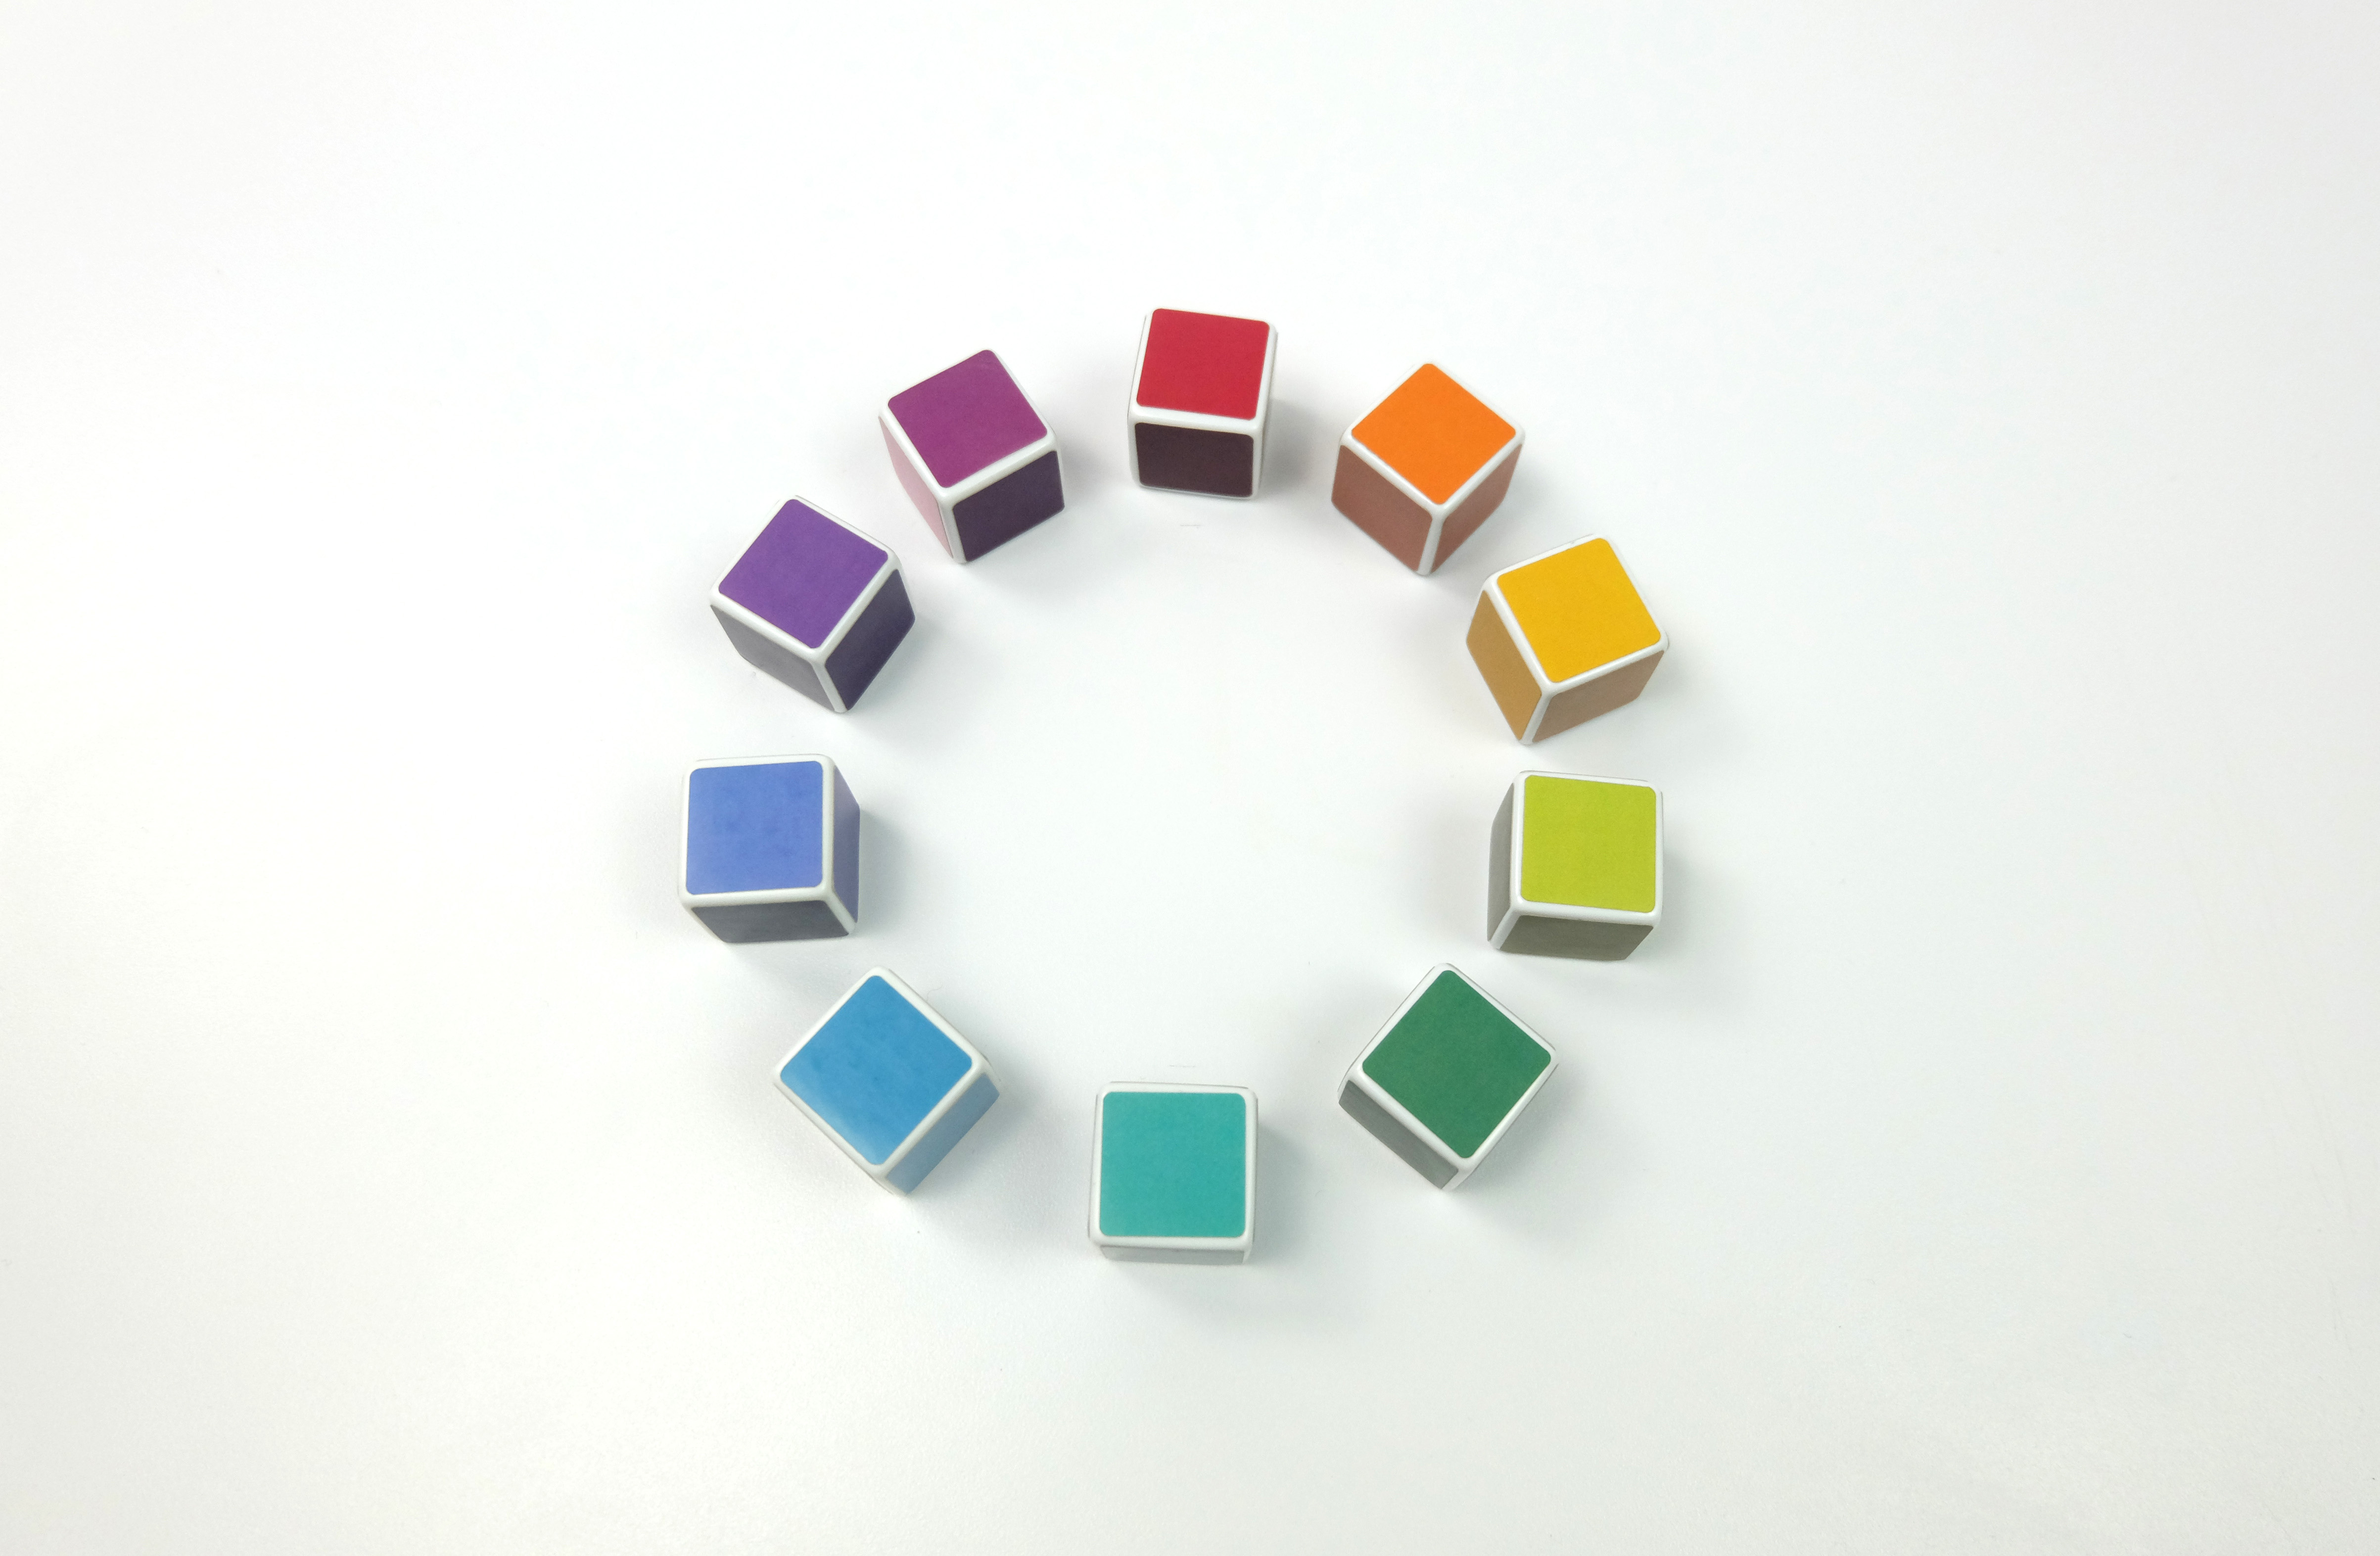 a spinning color wheel, where each color is made of dice.